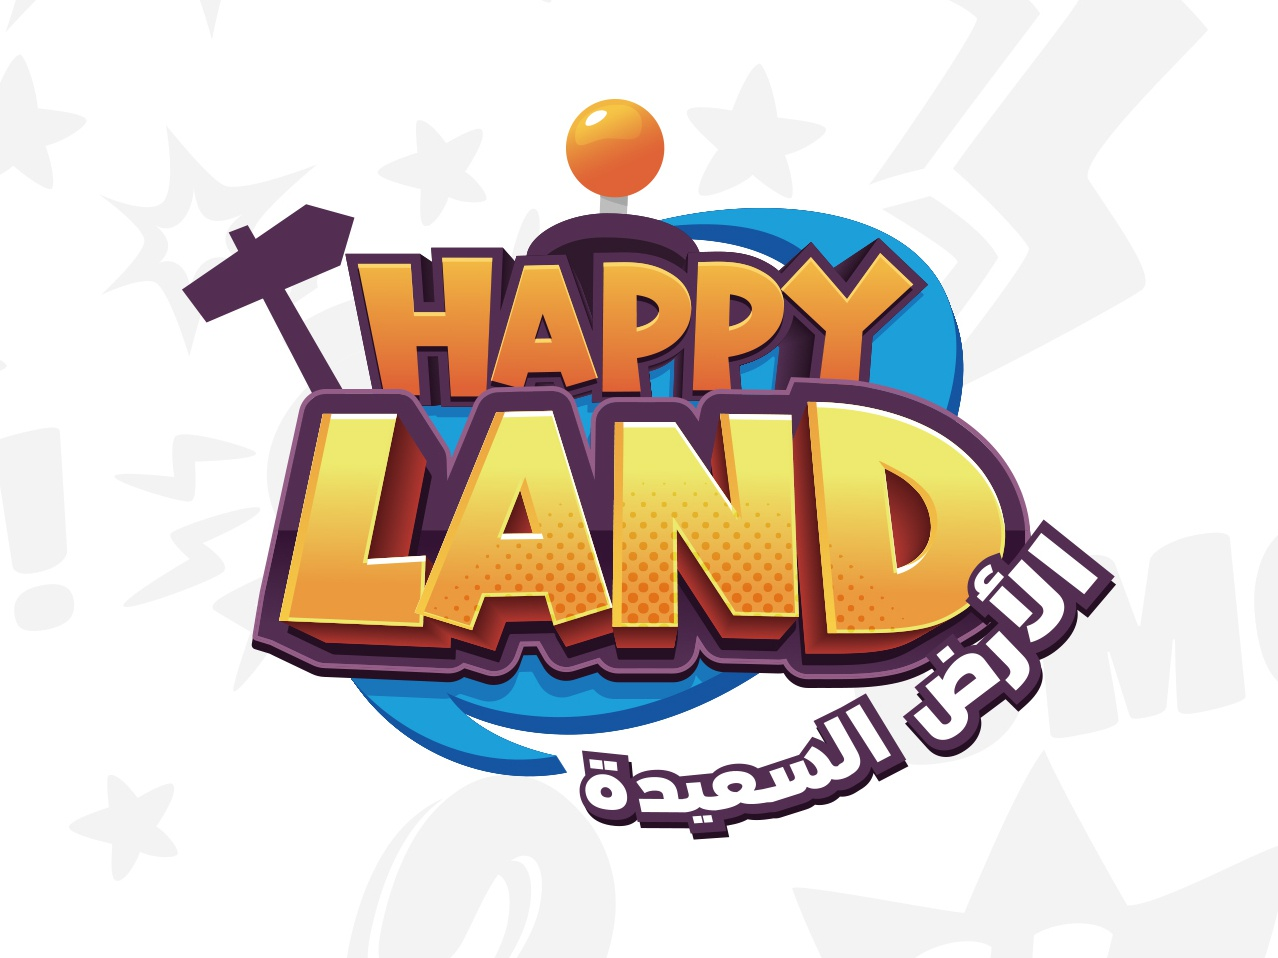 Happy land park game branding mobile game boardgame title logo title design game logo entertainment park logo